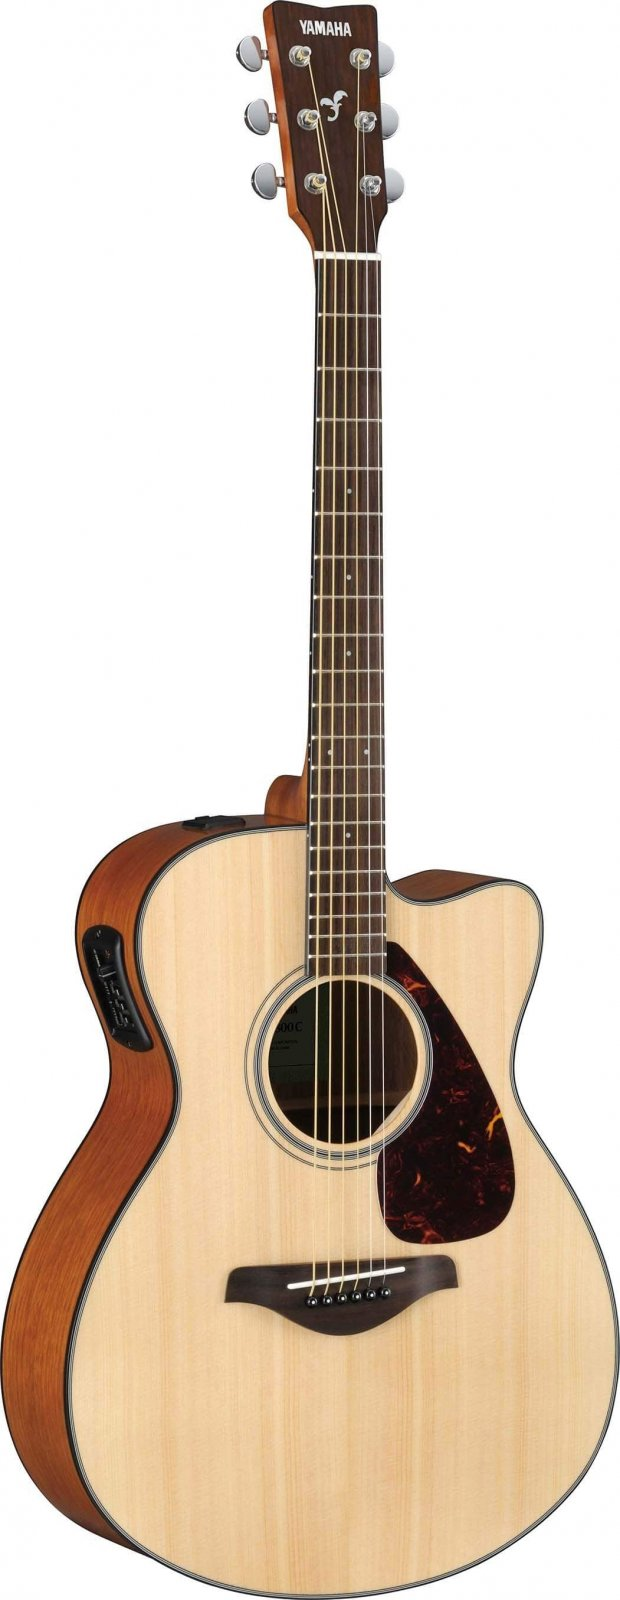 Yamaha FSX800C Small Body Acoustic Electric